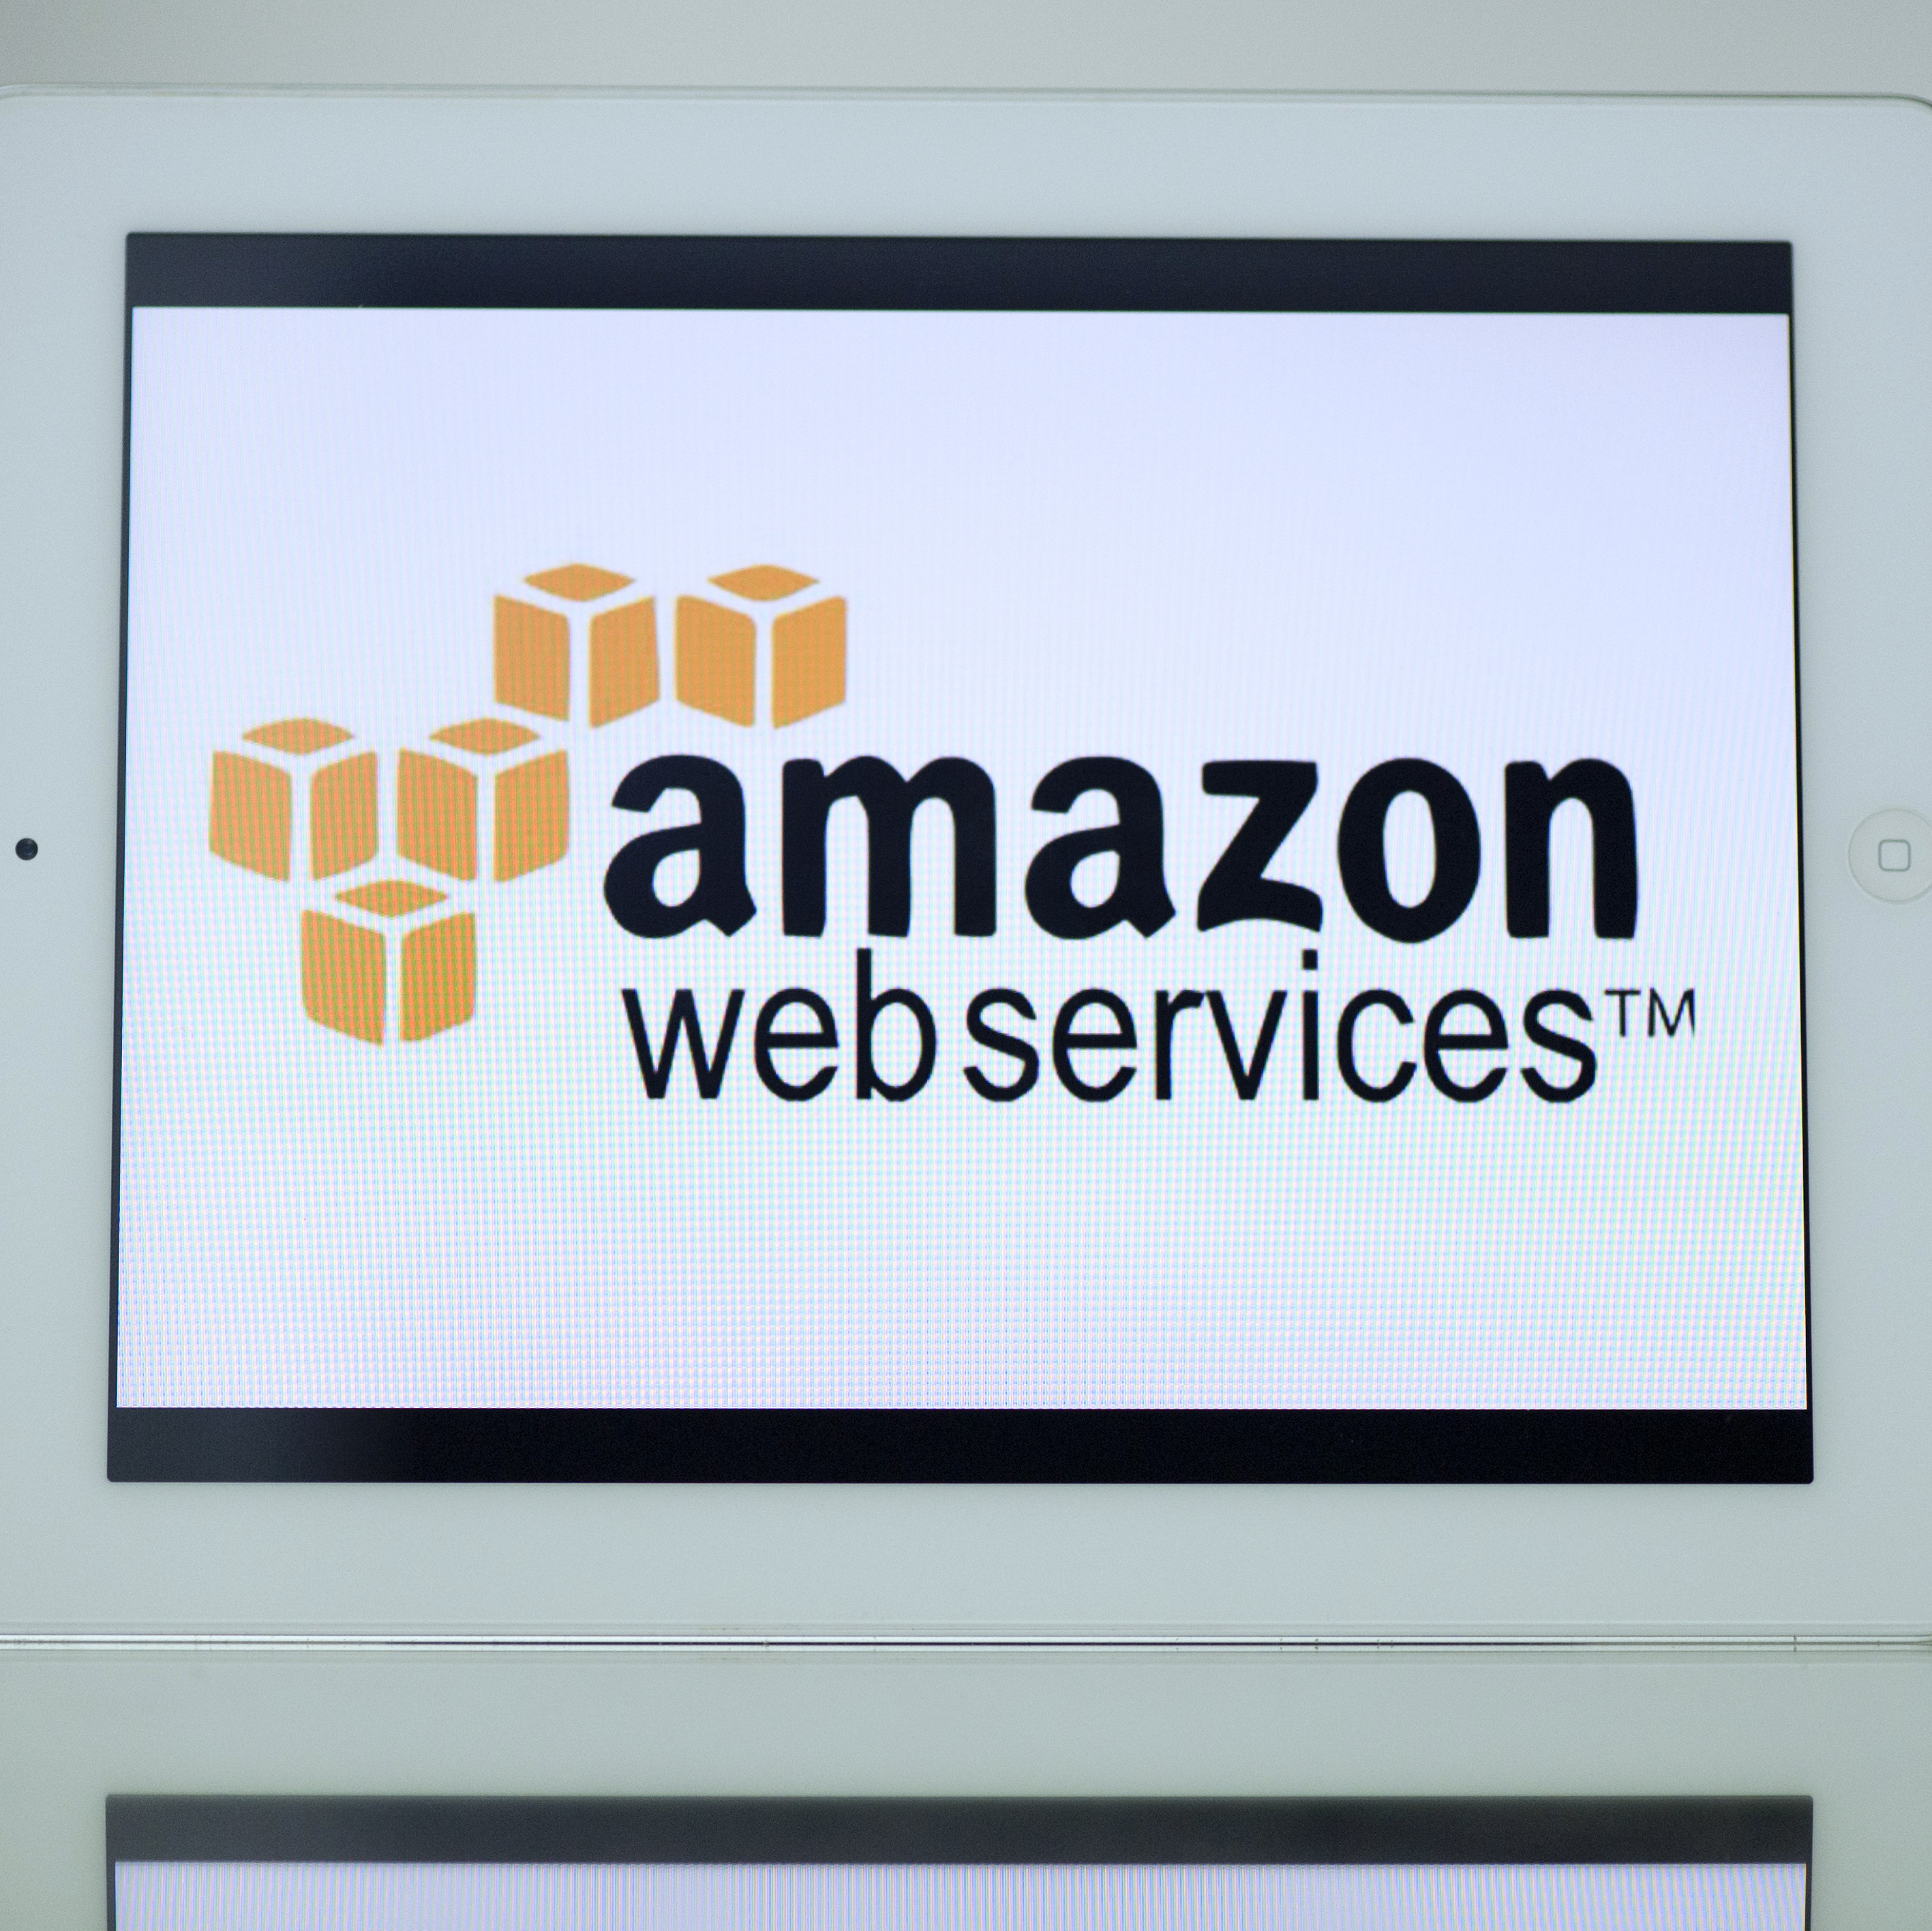 Amazon Web Services is the reigning king of large-scale cloud providers, but it has some serious competition from Google and Microsoft.